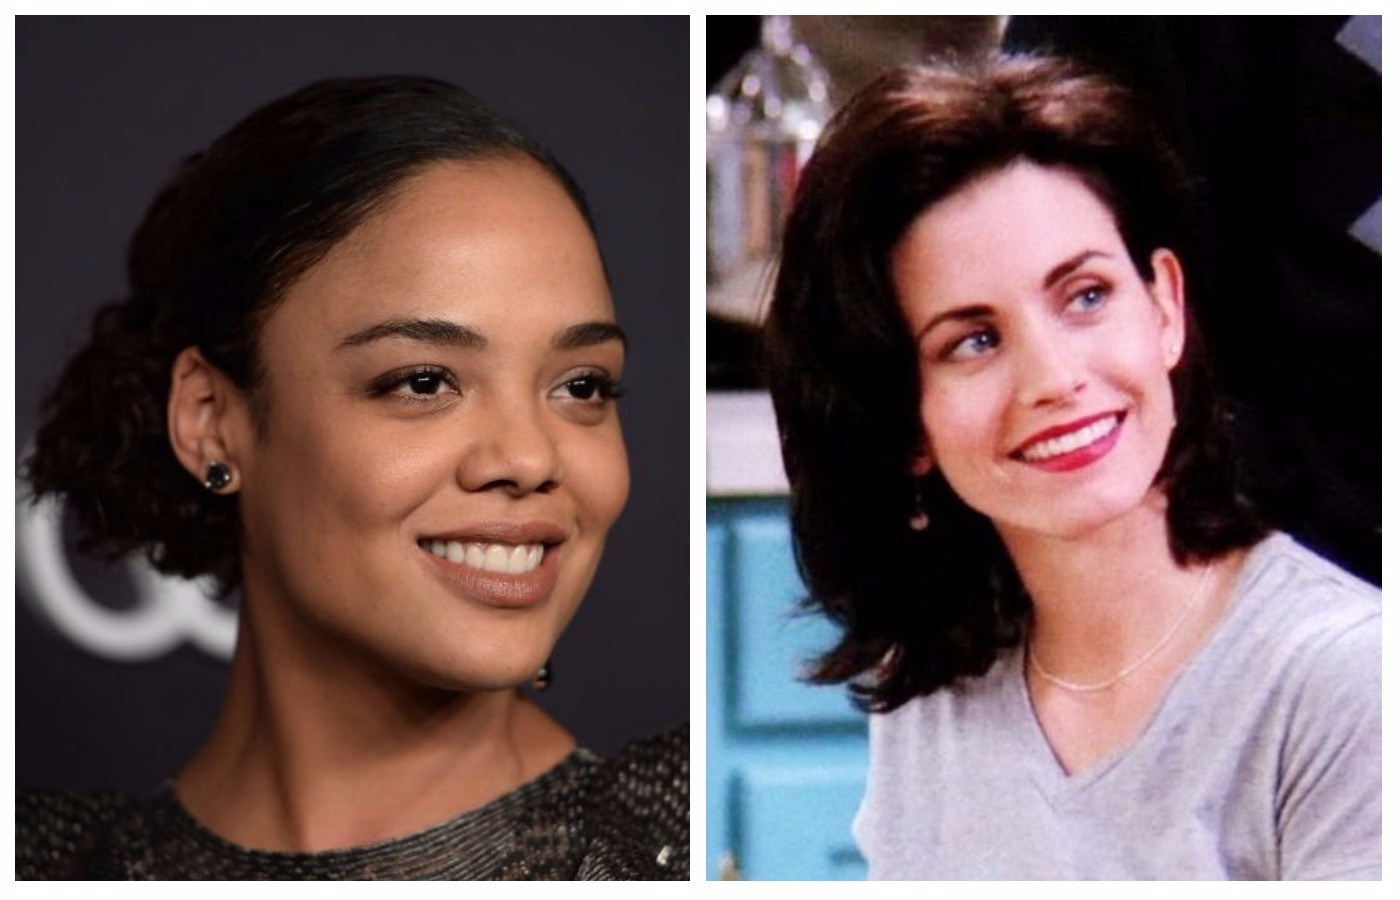 Tessa Thompson Is Dying To Know What Courteney Cox Thought Of Her Take On Monica Geller In Moonlight